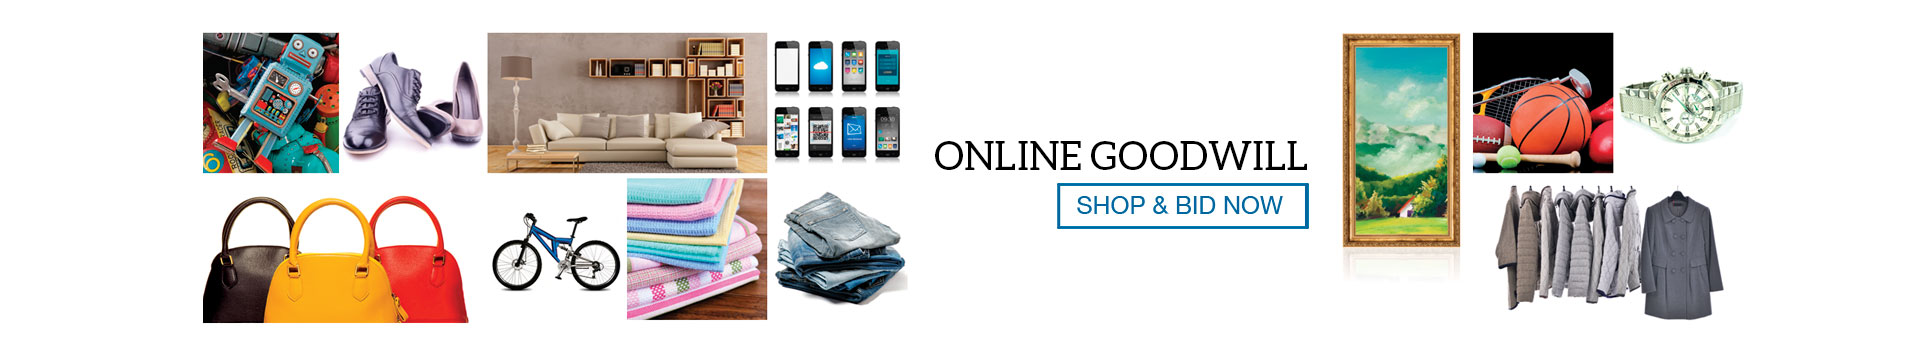 Slider_Headers-Online-Goodwill